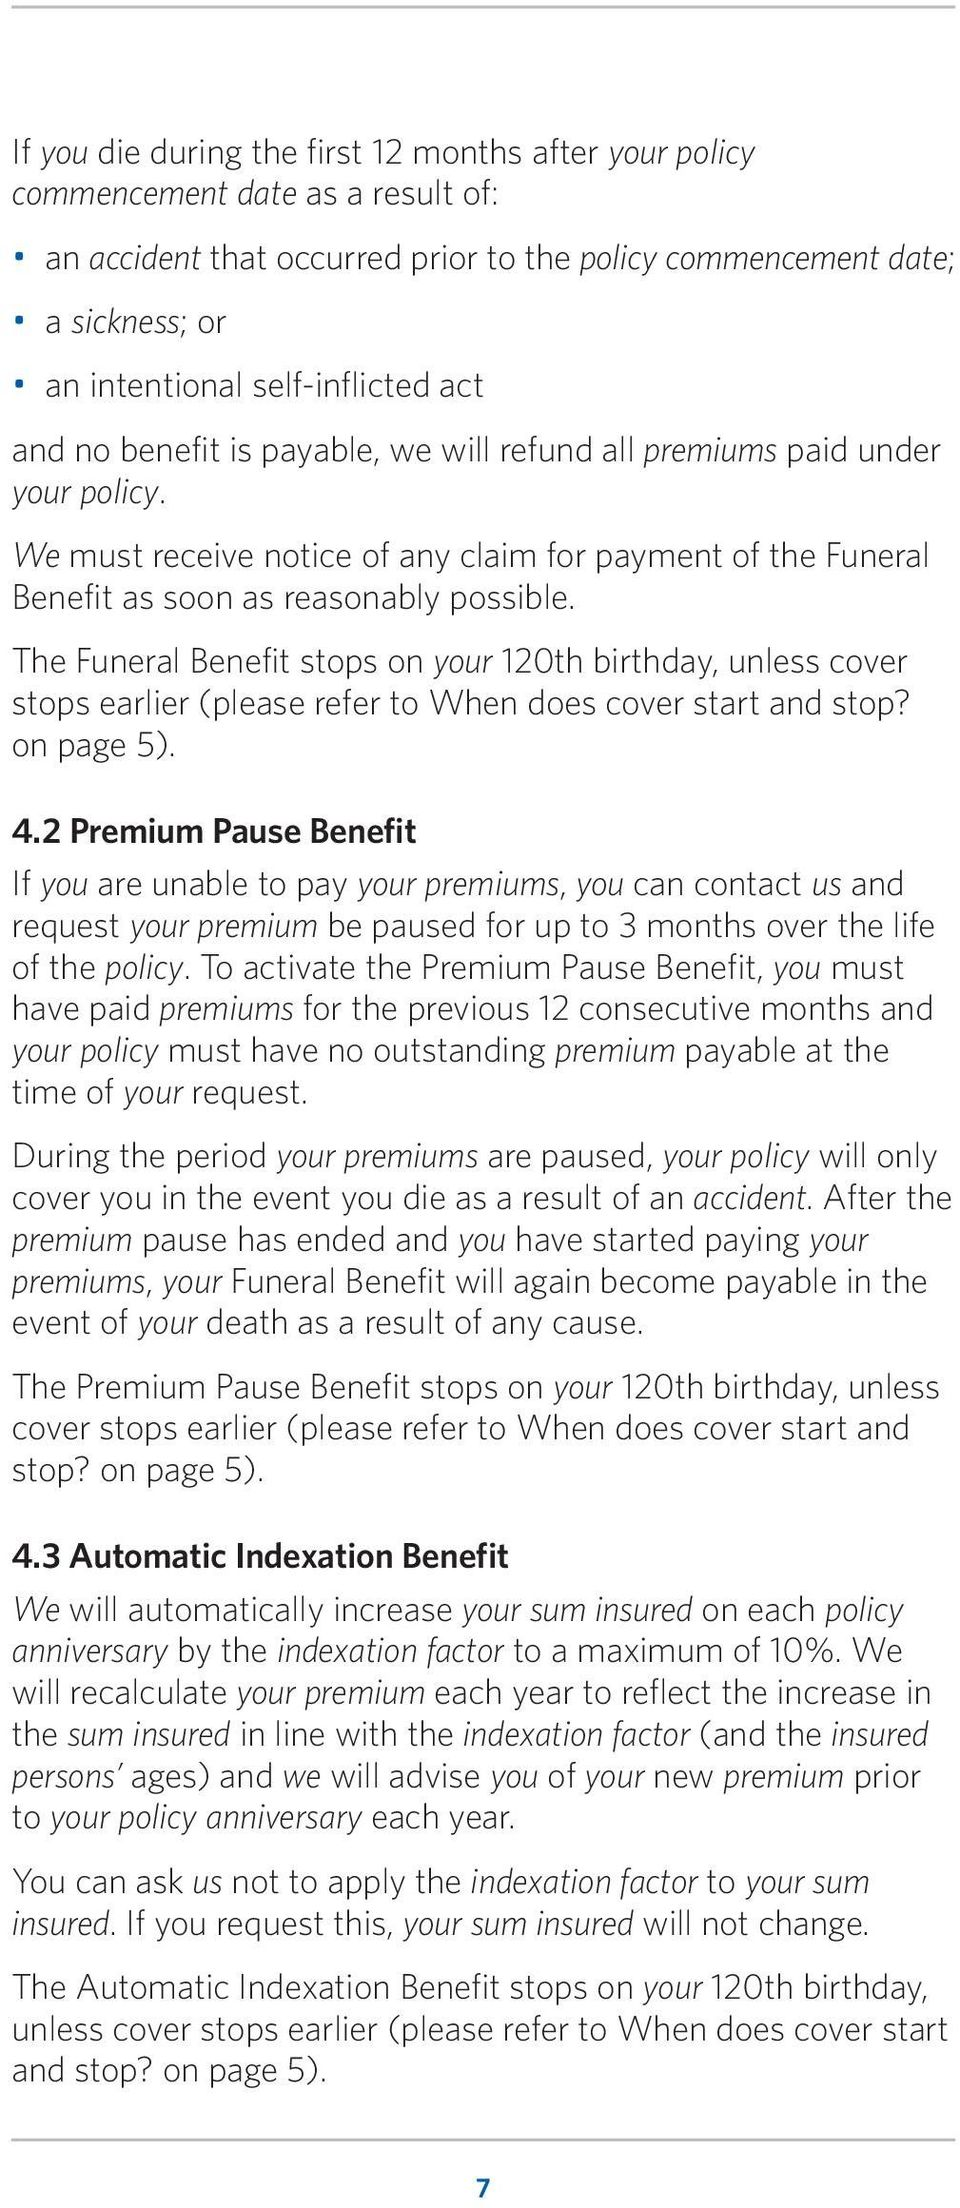 The Funeral Benefit stops on your 120th birthday, unless cover stops earlier (please refer to When does cover start and stop? on page 5). 4.